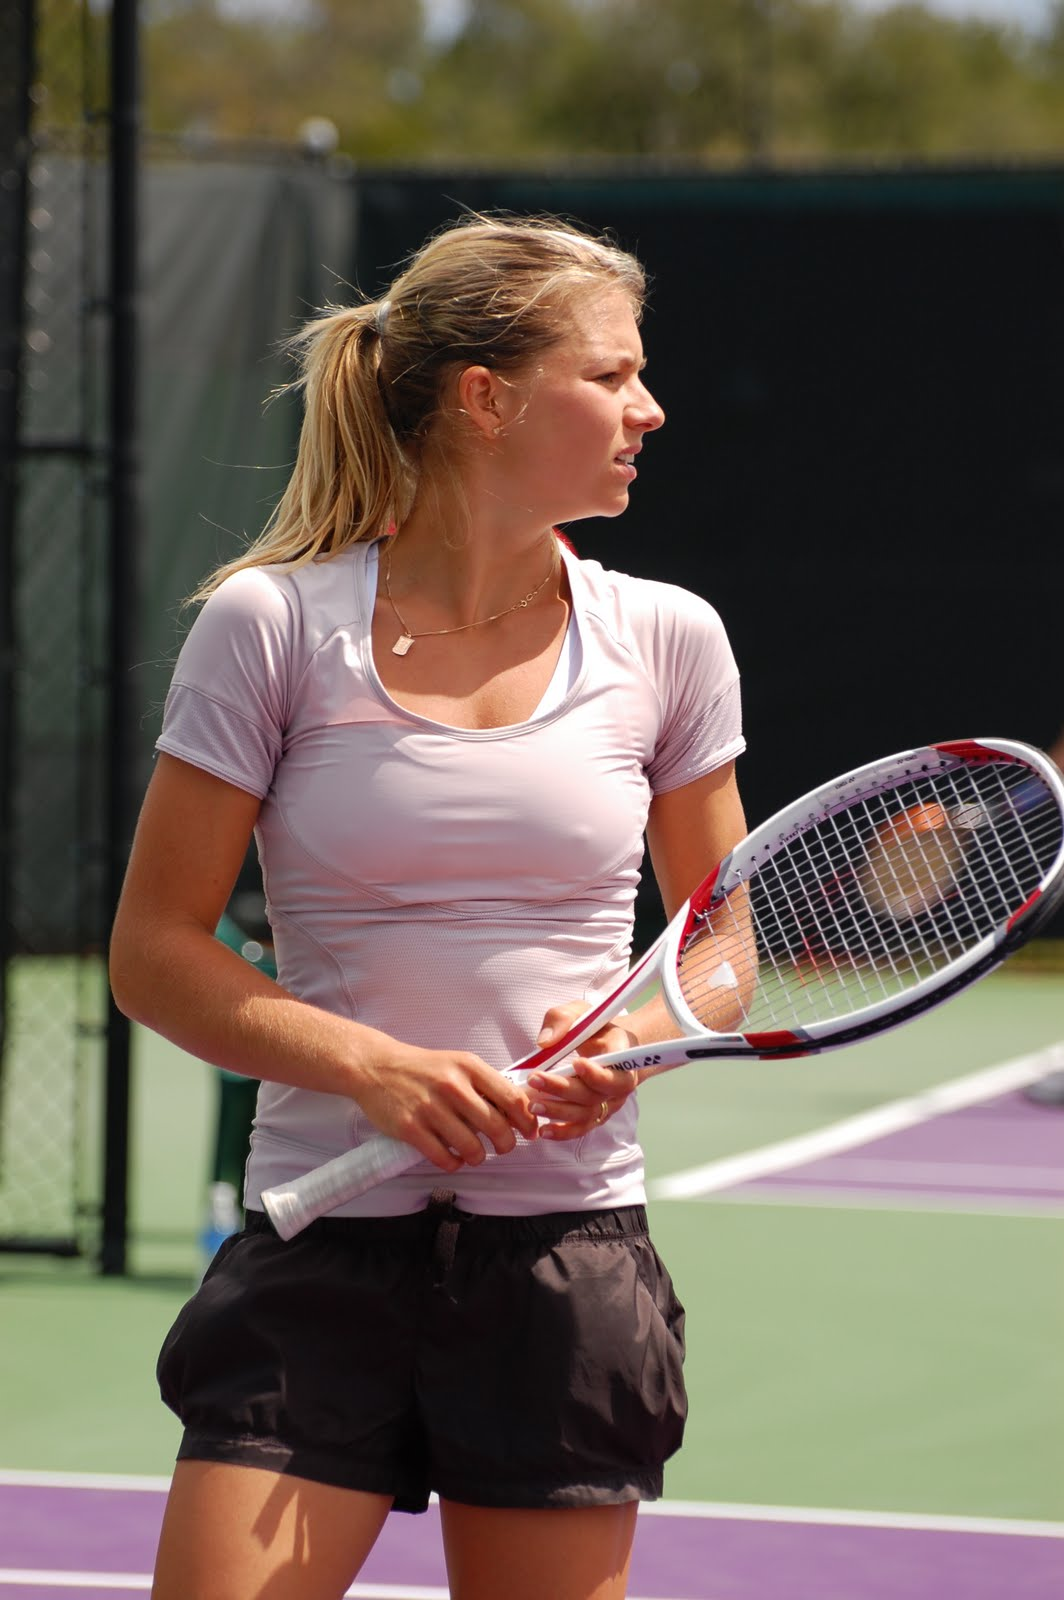 Wta Hotties 2010 Hot 100 4 Maria Kirilenko-1503